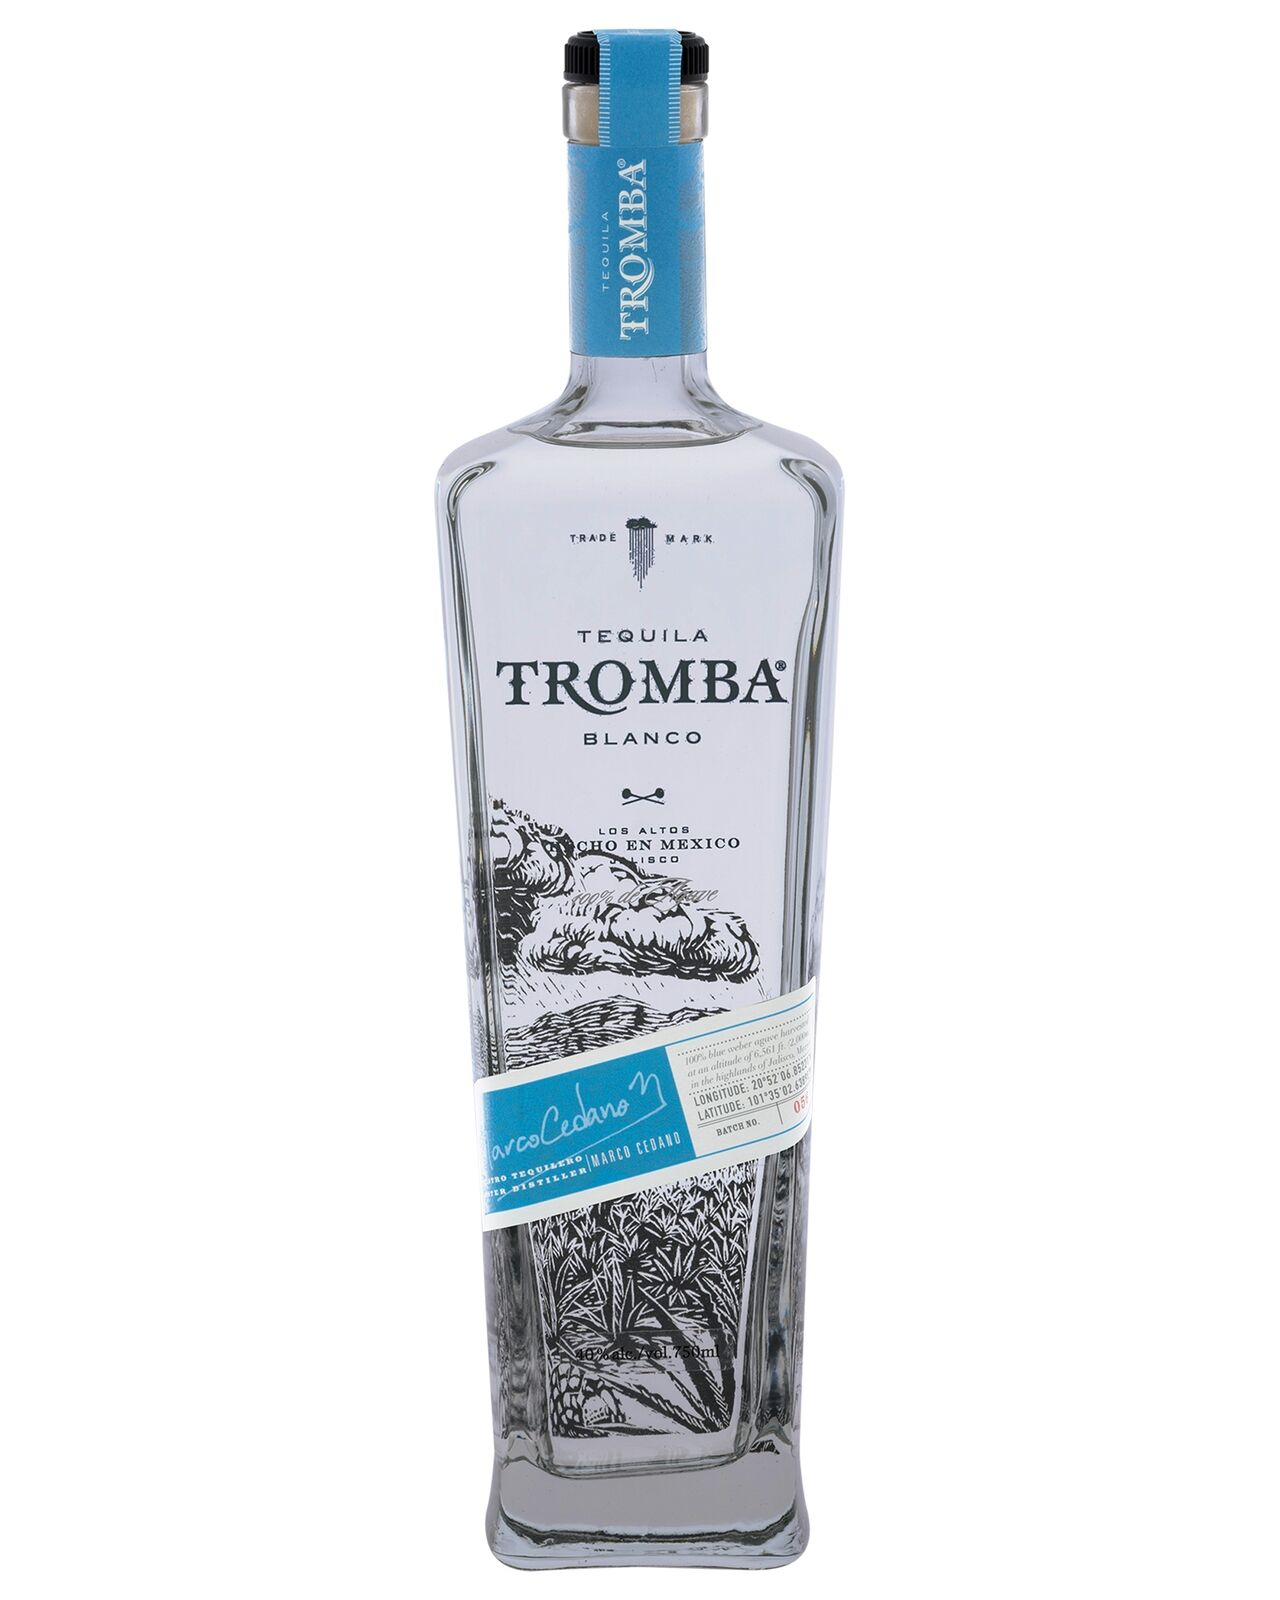 Tromba Blanco Tequila bottle 750mL Los Altos highlands of Jalisco